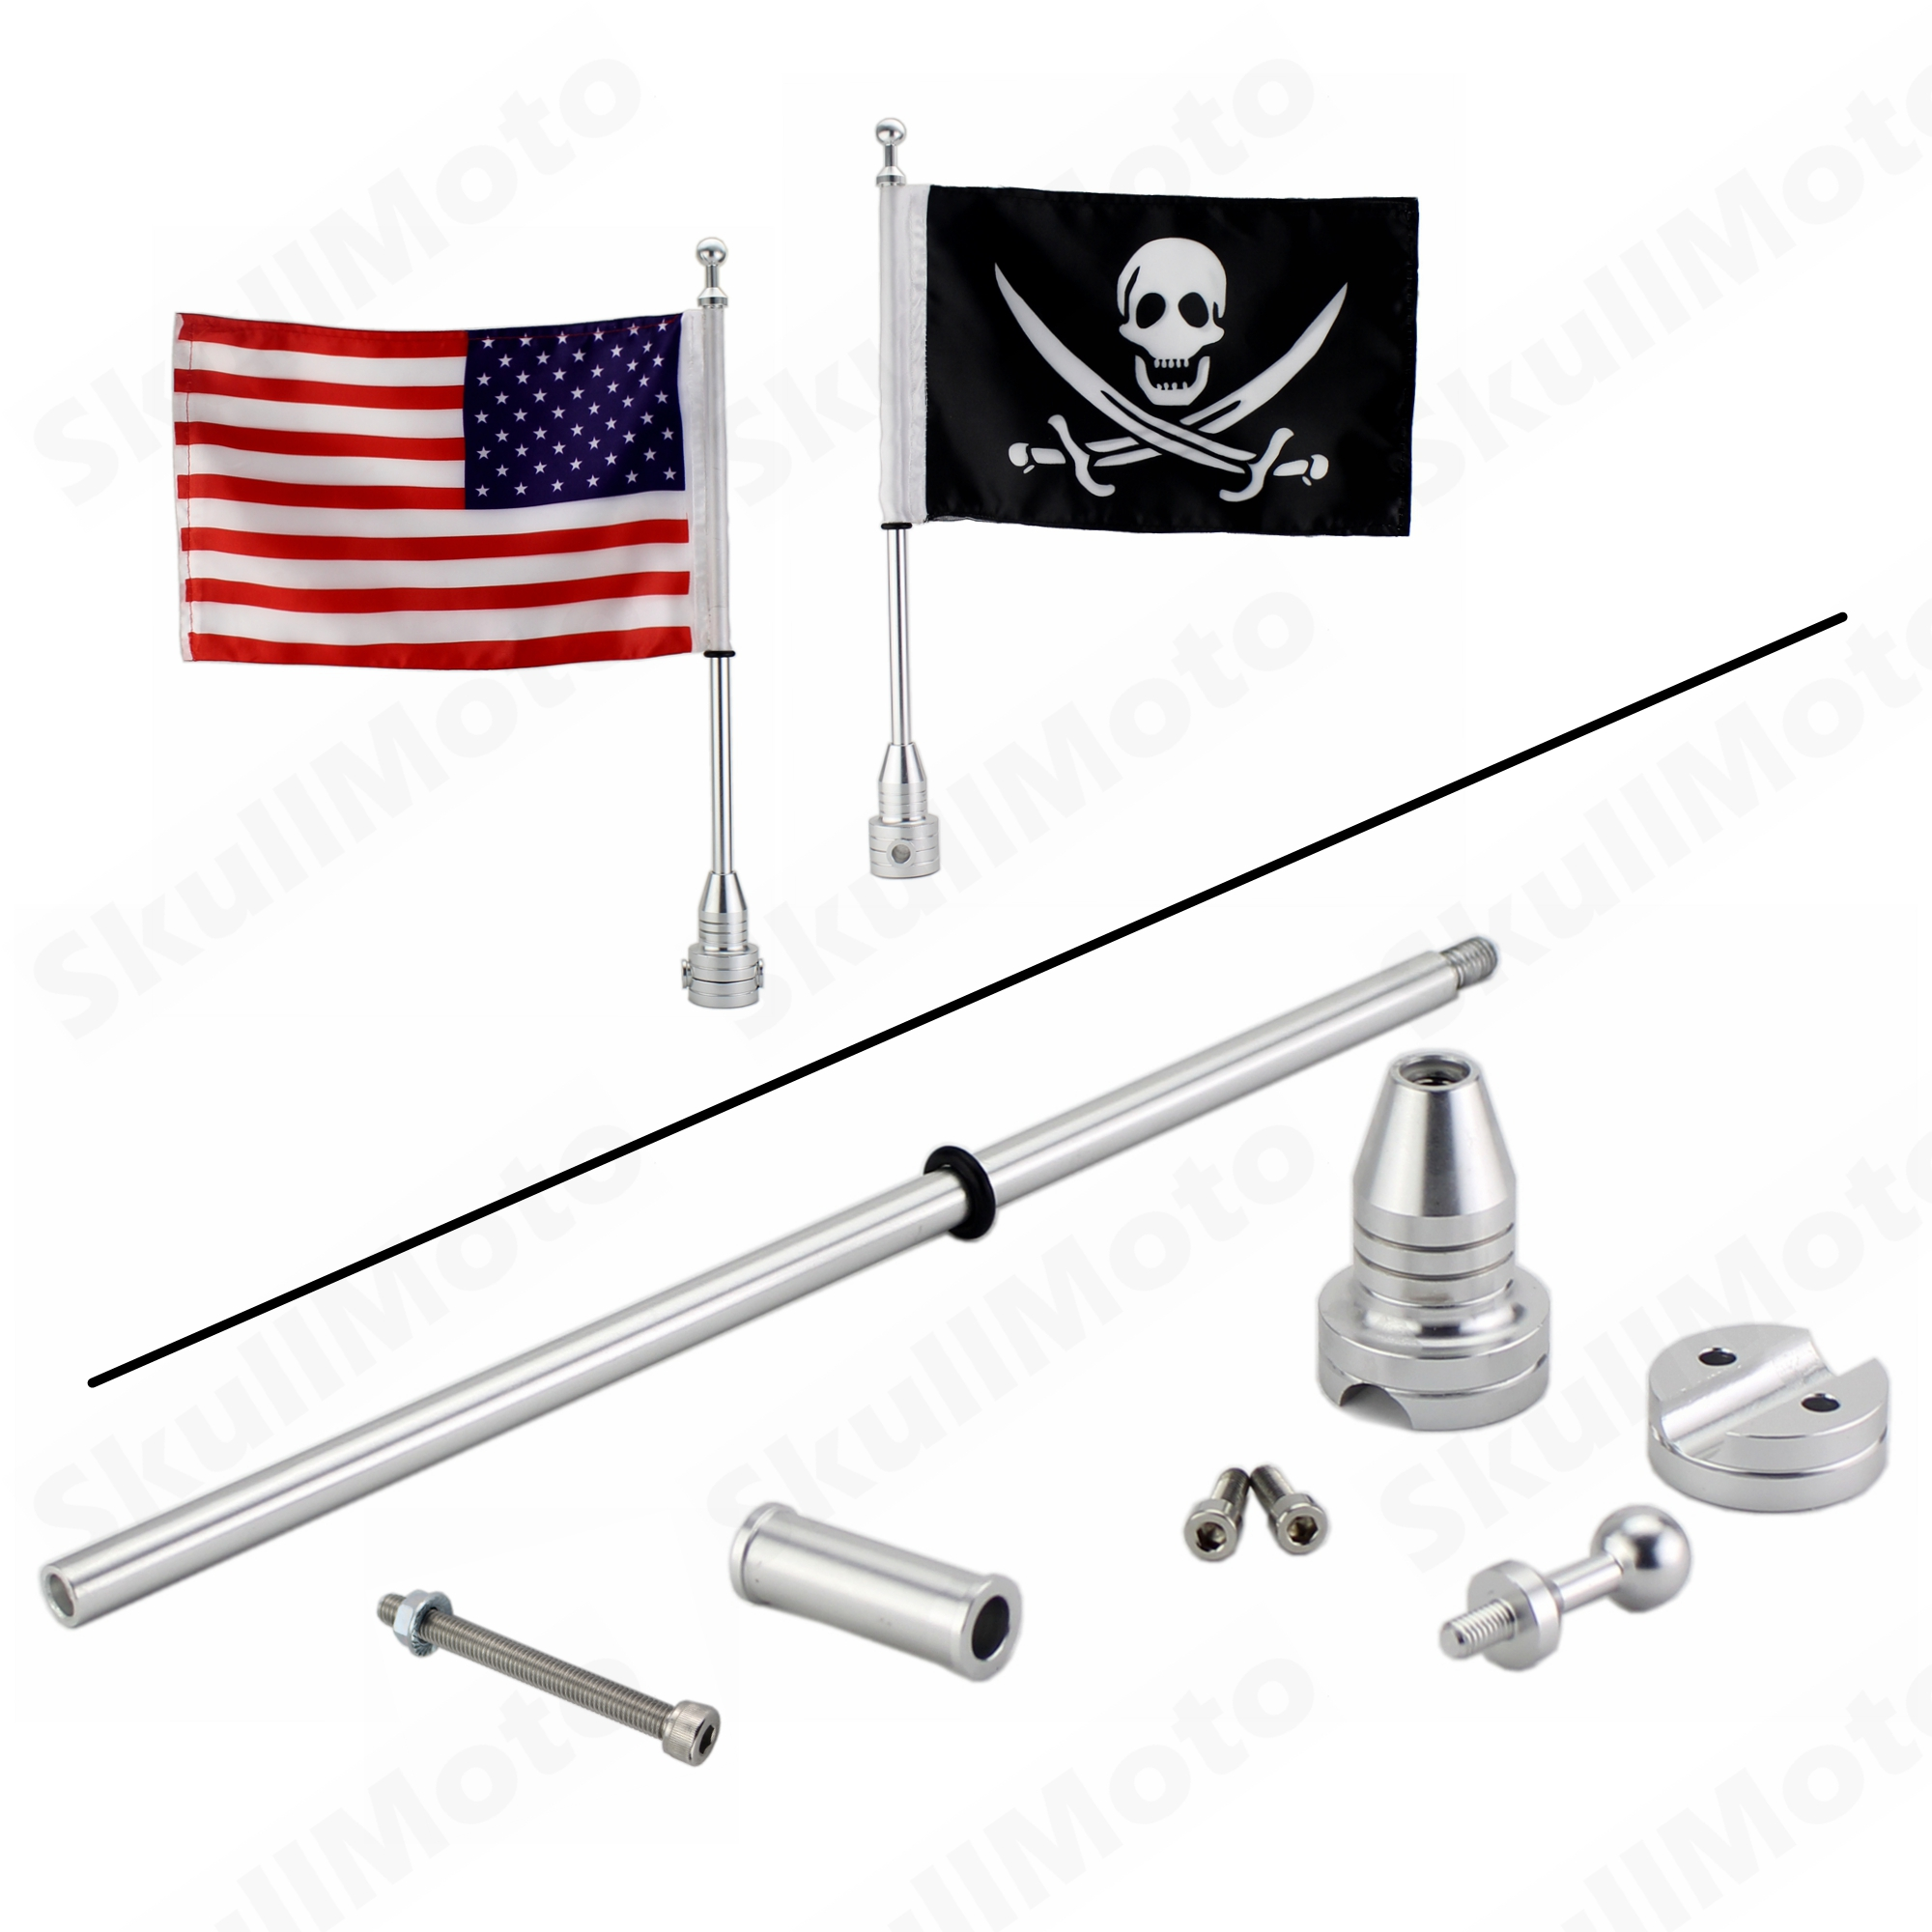 Motorcycle Silver CNC Rear Side Mount Flag Pole with USA Skull Flag Pirate flag For Harley Cruiser